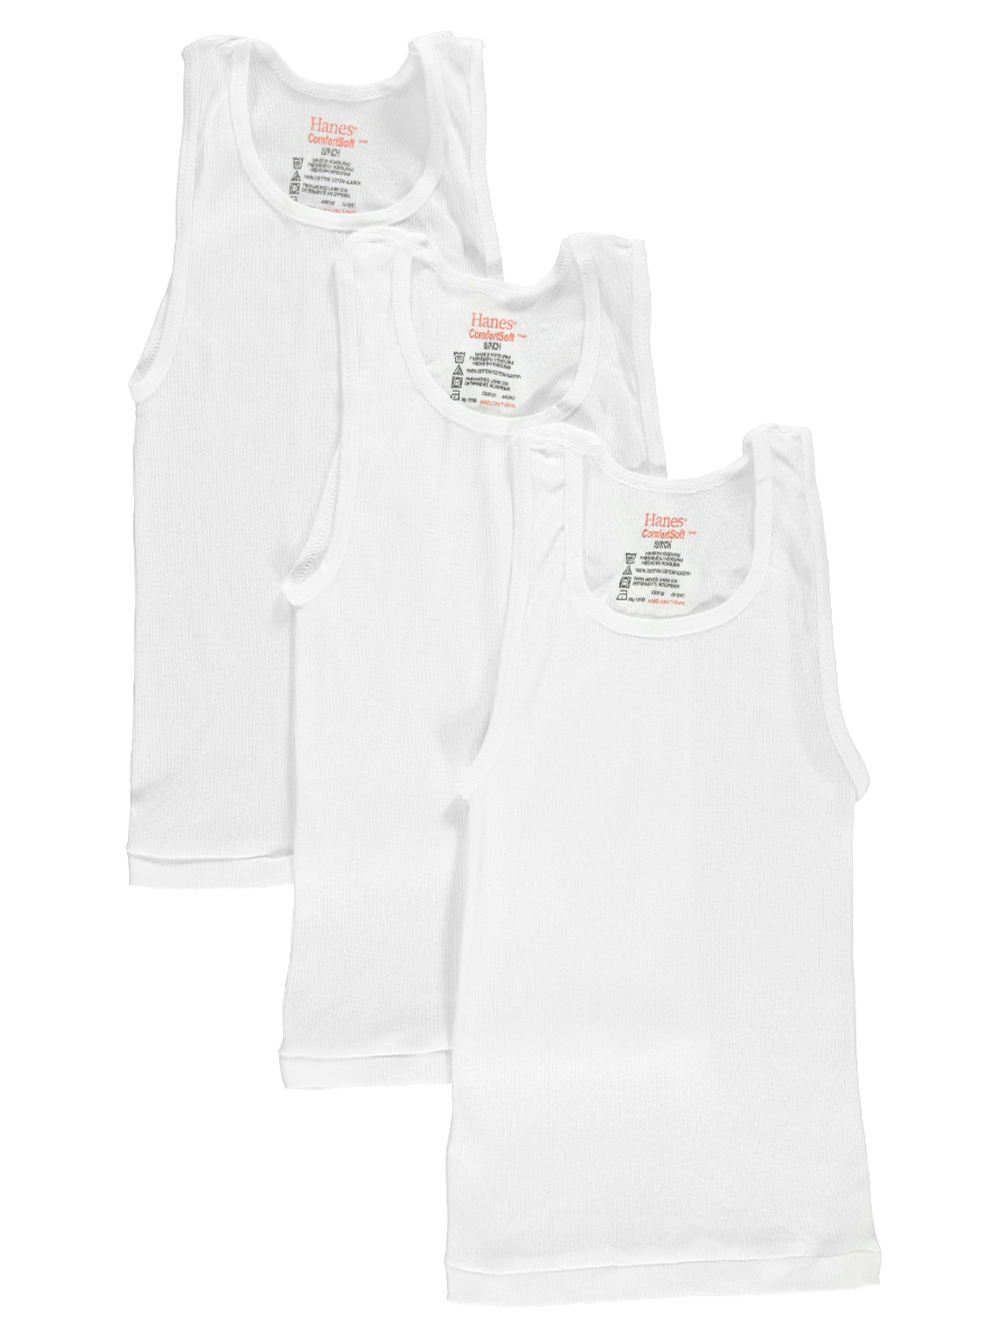 Image of Hanes 3Pack Tagless Tanks Sizes 8  20